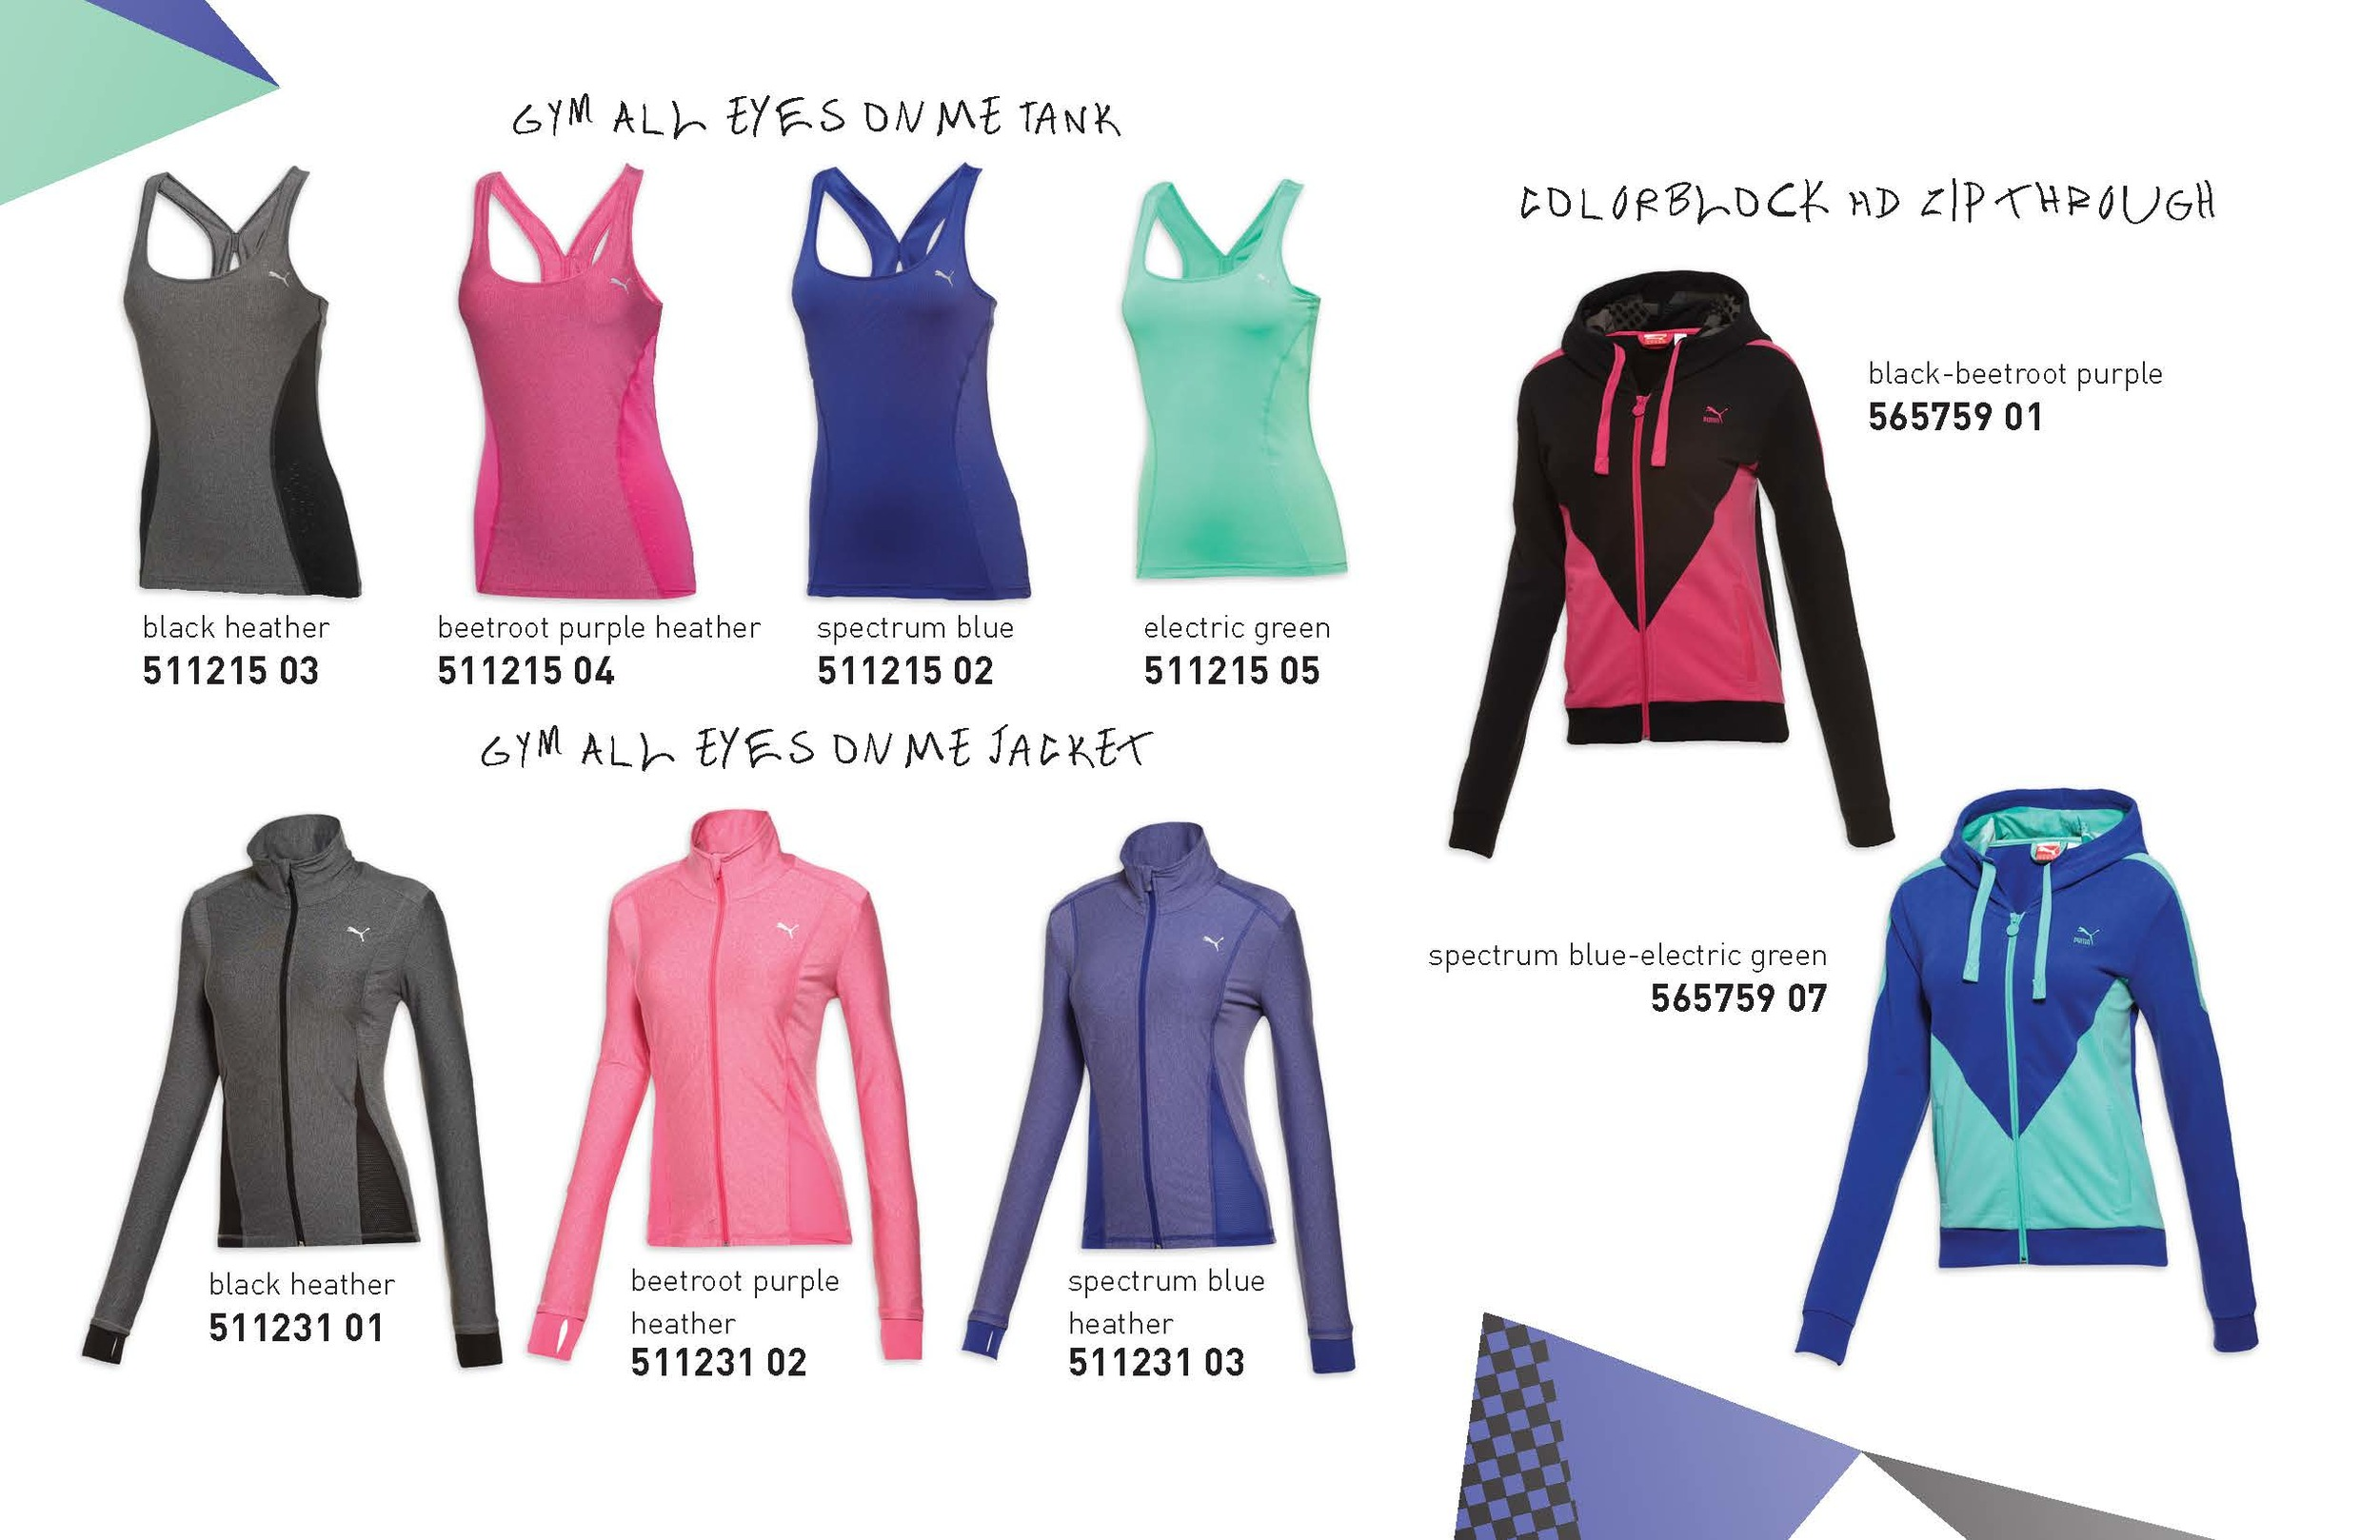 PUMA_booklet_7-30-13_HIRES_view_Page_14.jpg